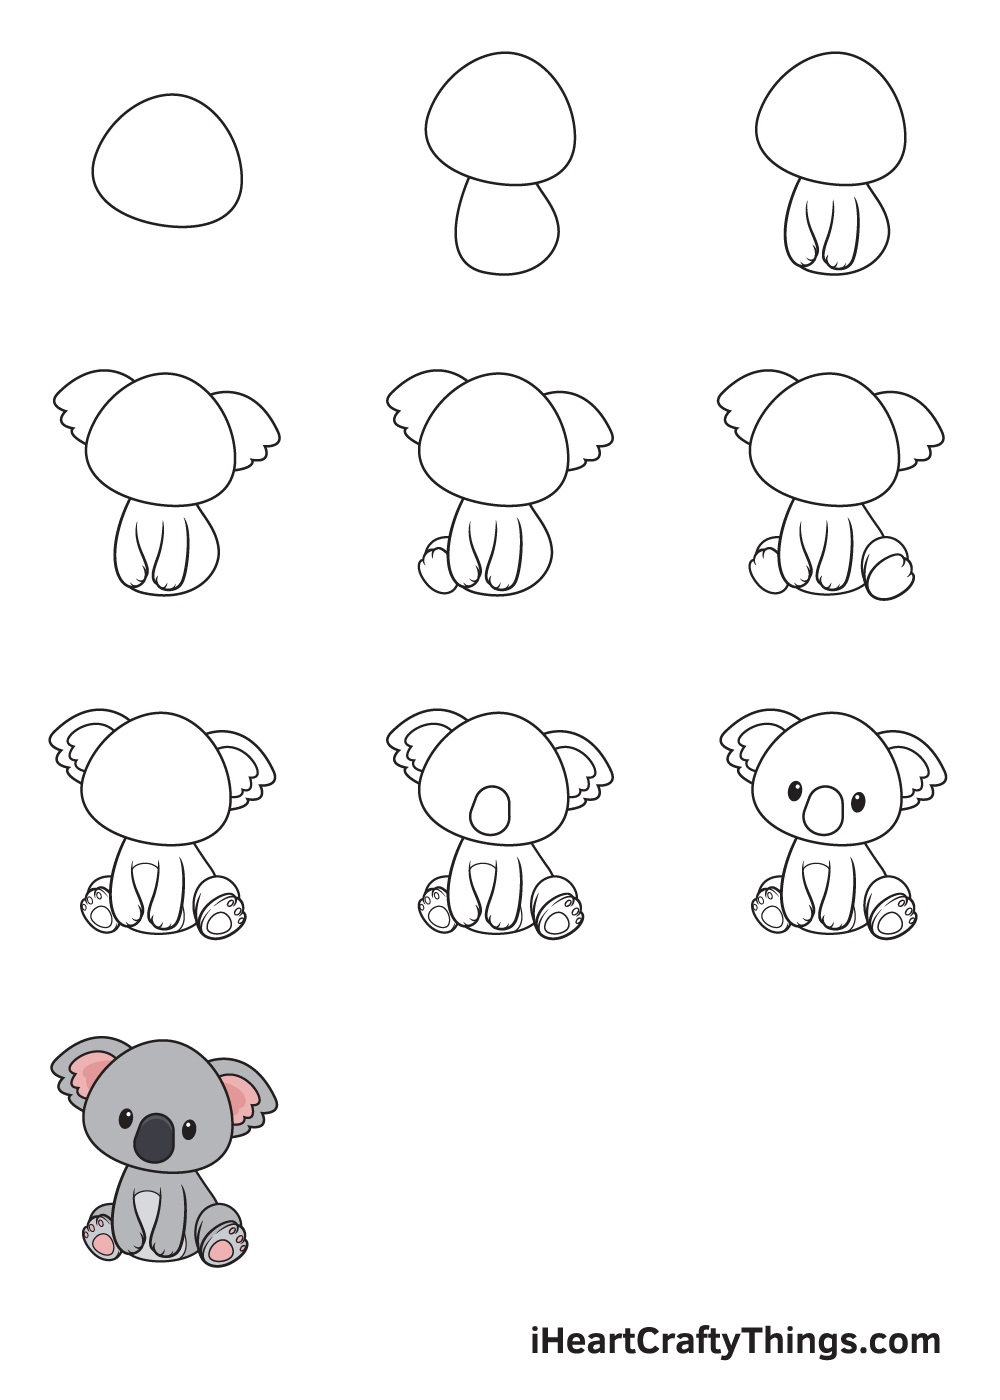 drawing animals in 9 steps